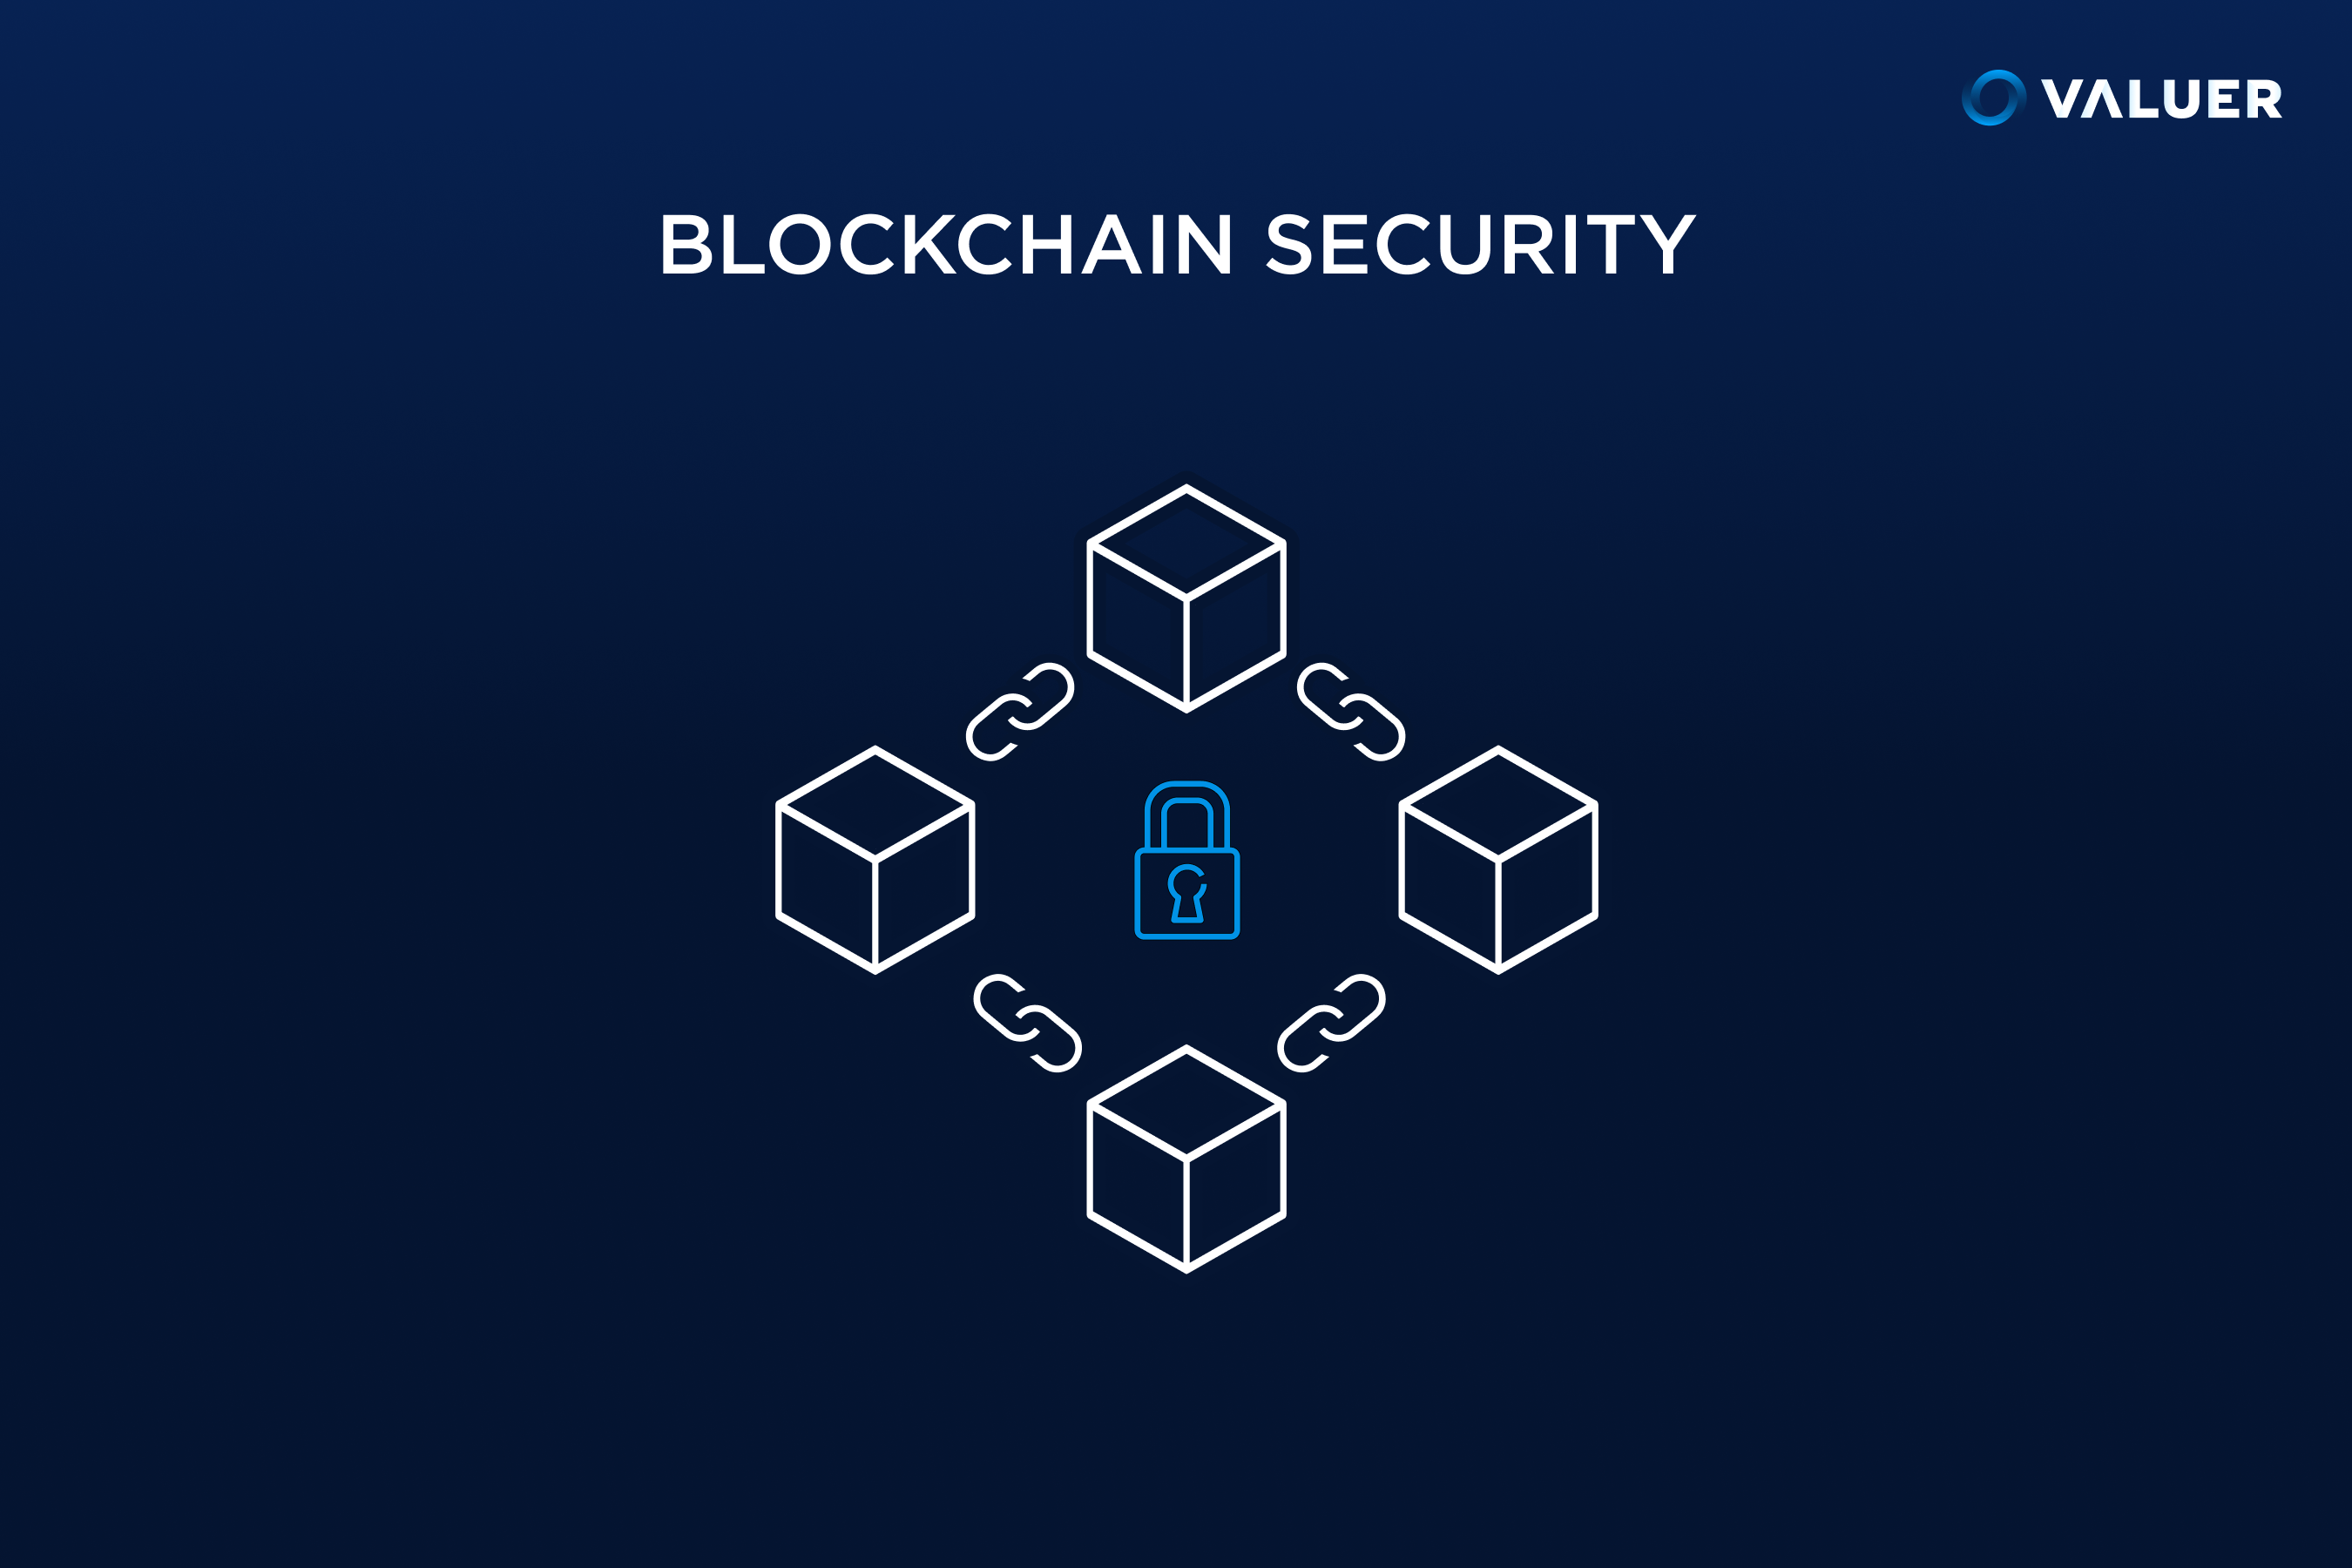 blockchain security with image of blockchain